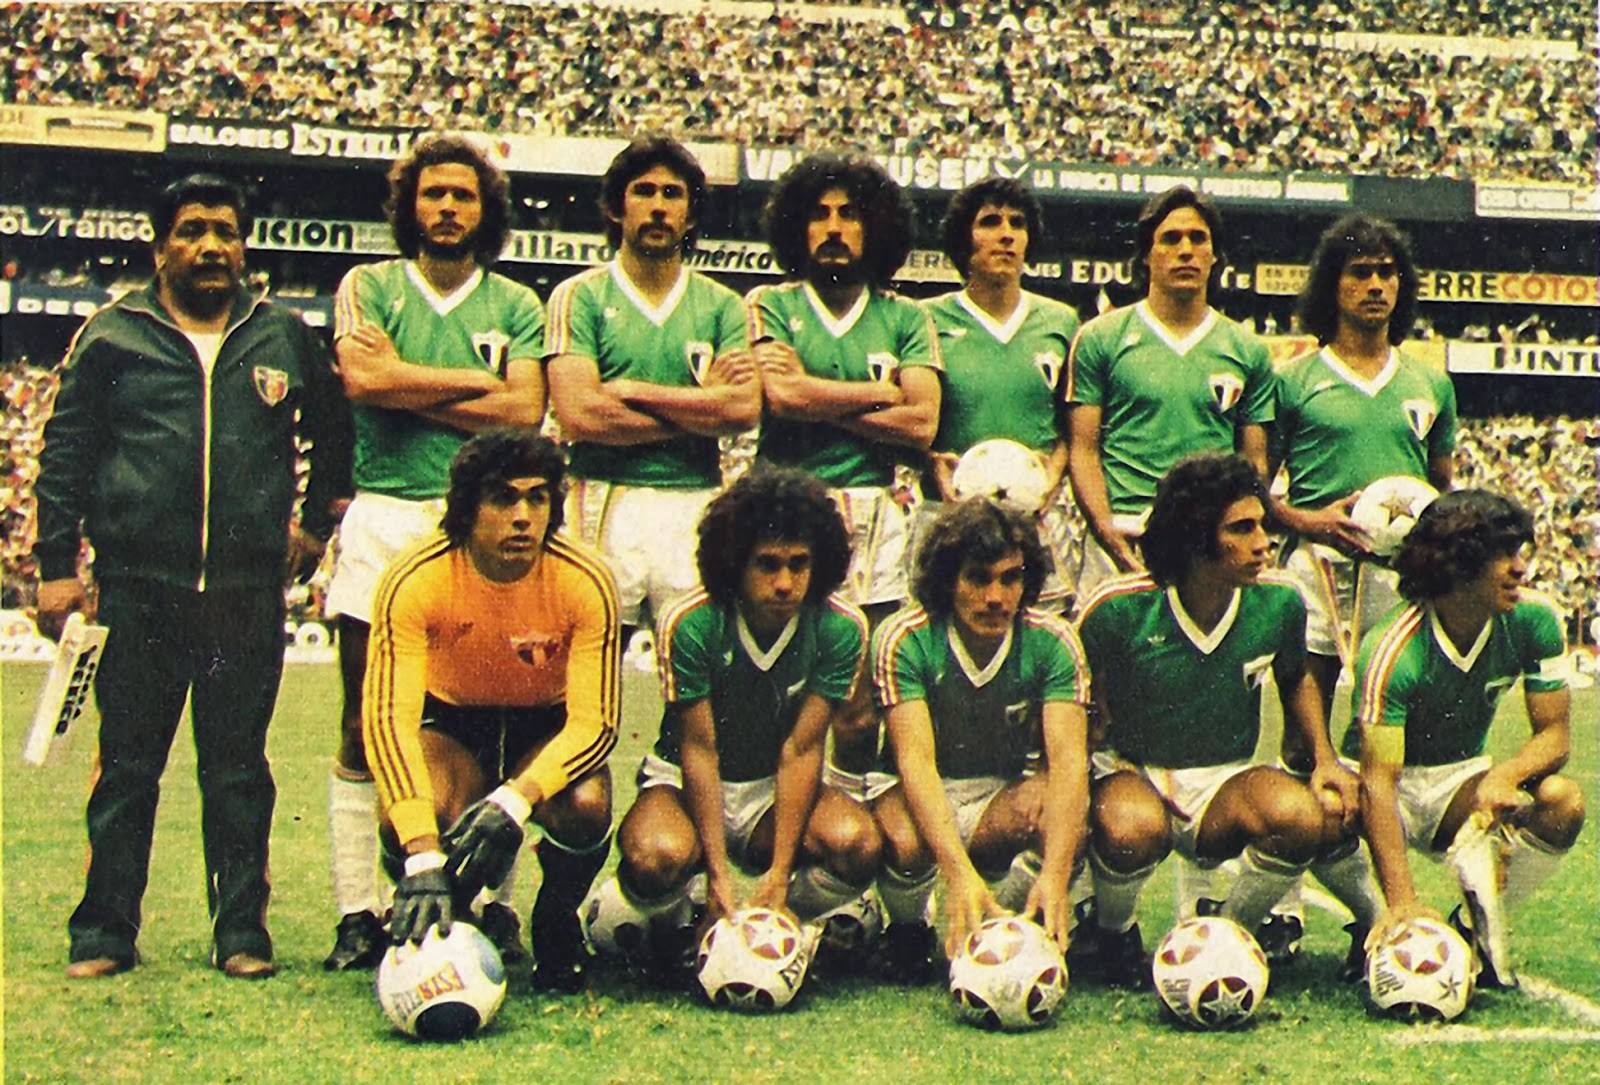 Mexico's World Cup History